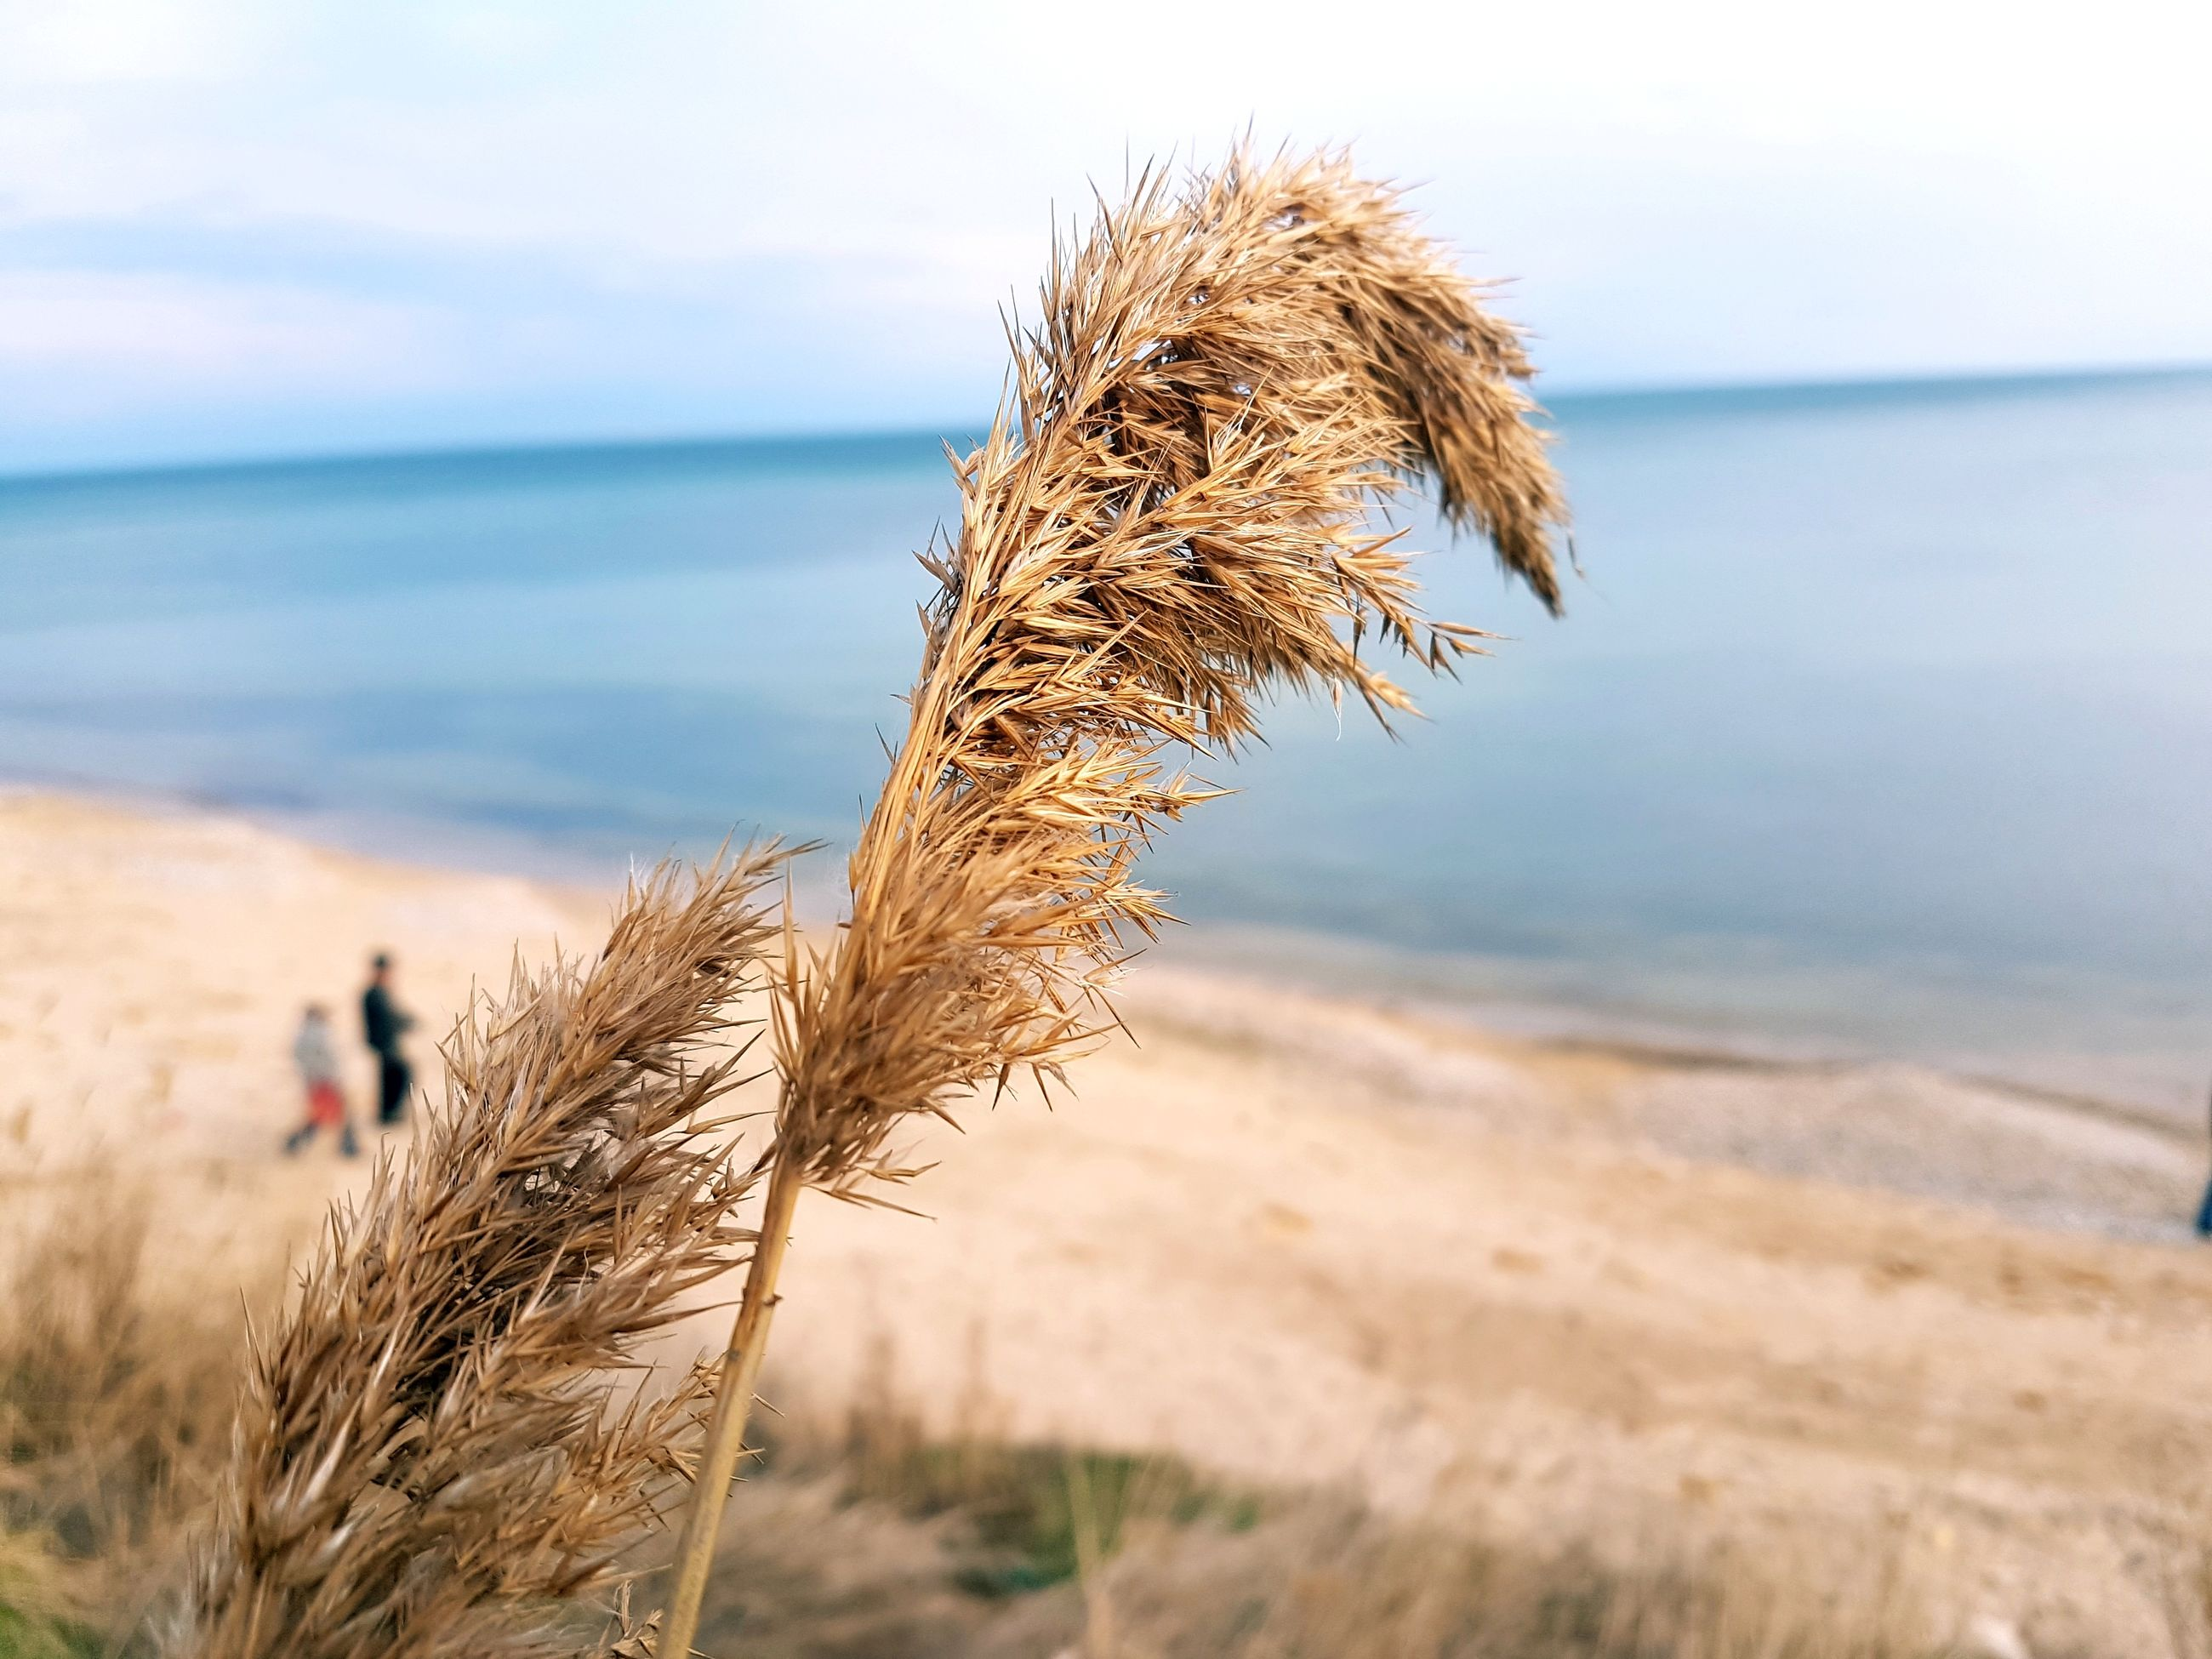 sea, nature, water, horizon over water, scenics, sky, tranquility, beach, tranquil scene, no people, growth, day, outdoors, beauty in nature, close-up, mammal